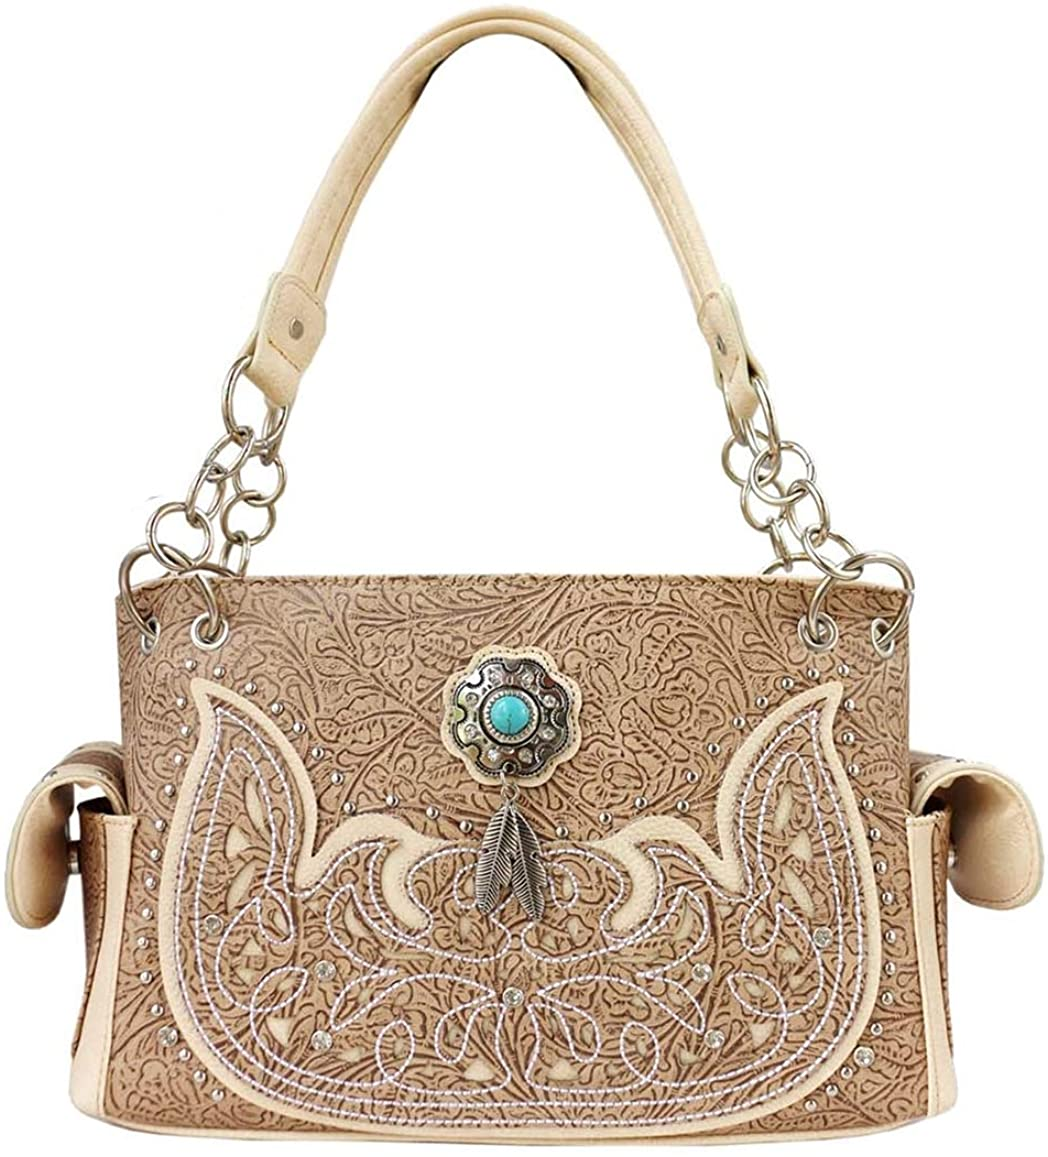 Western Tooled Leather Laser Cut Floral Concealed Purse Cowgirl Shoulder Bags in 5 colors